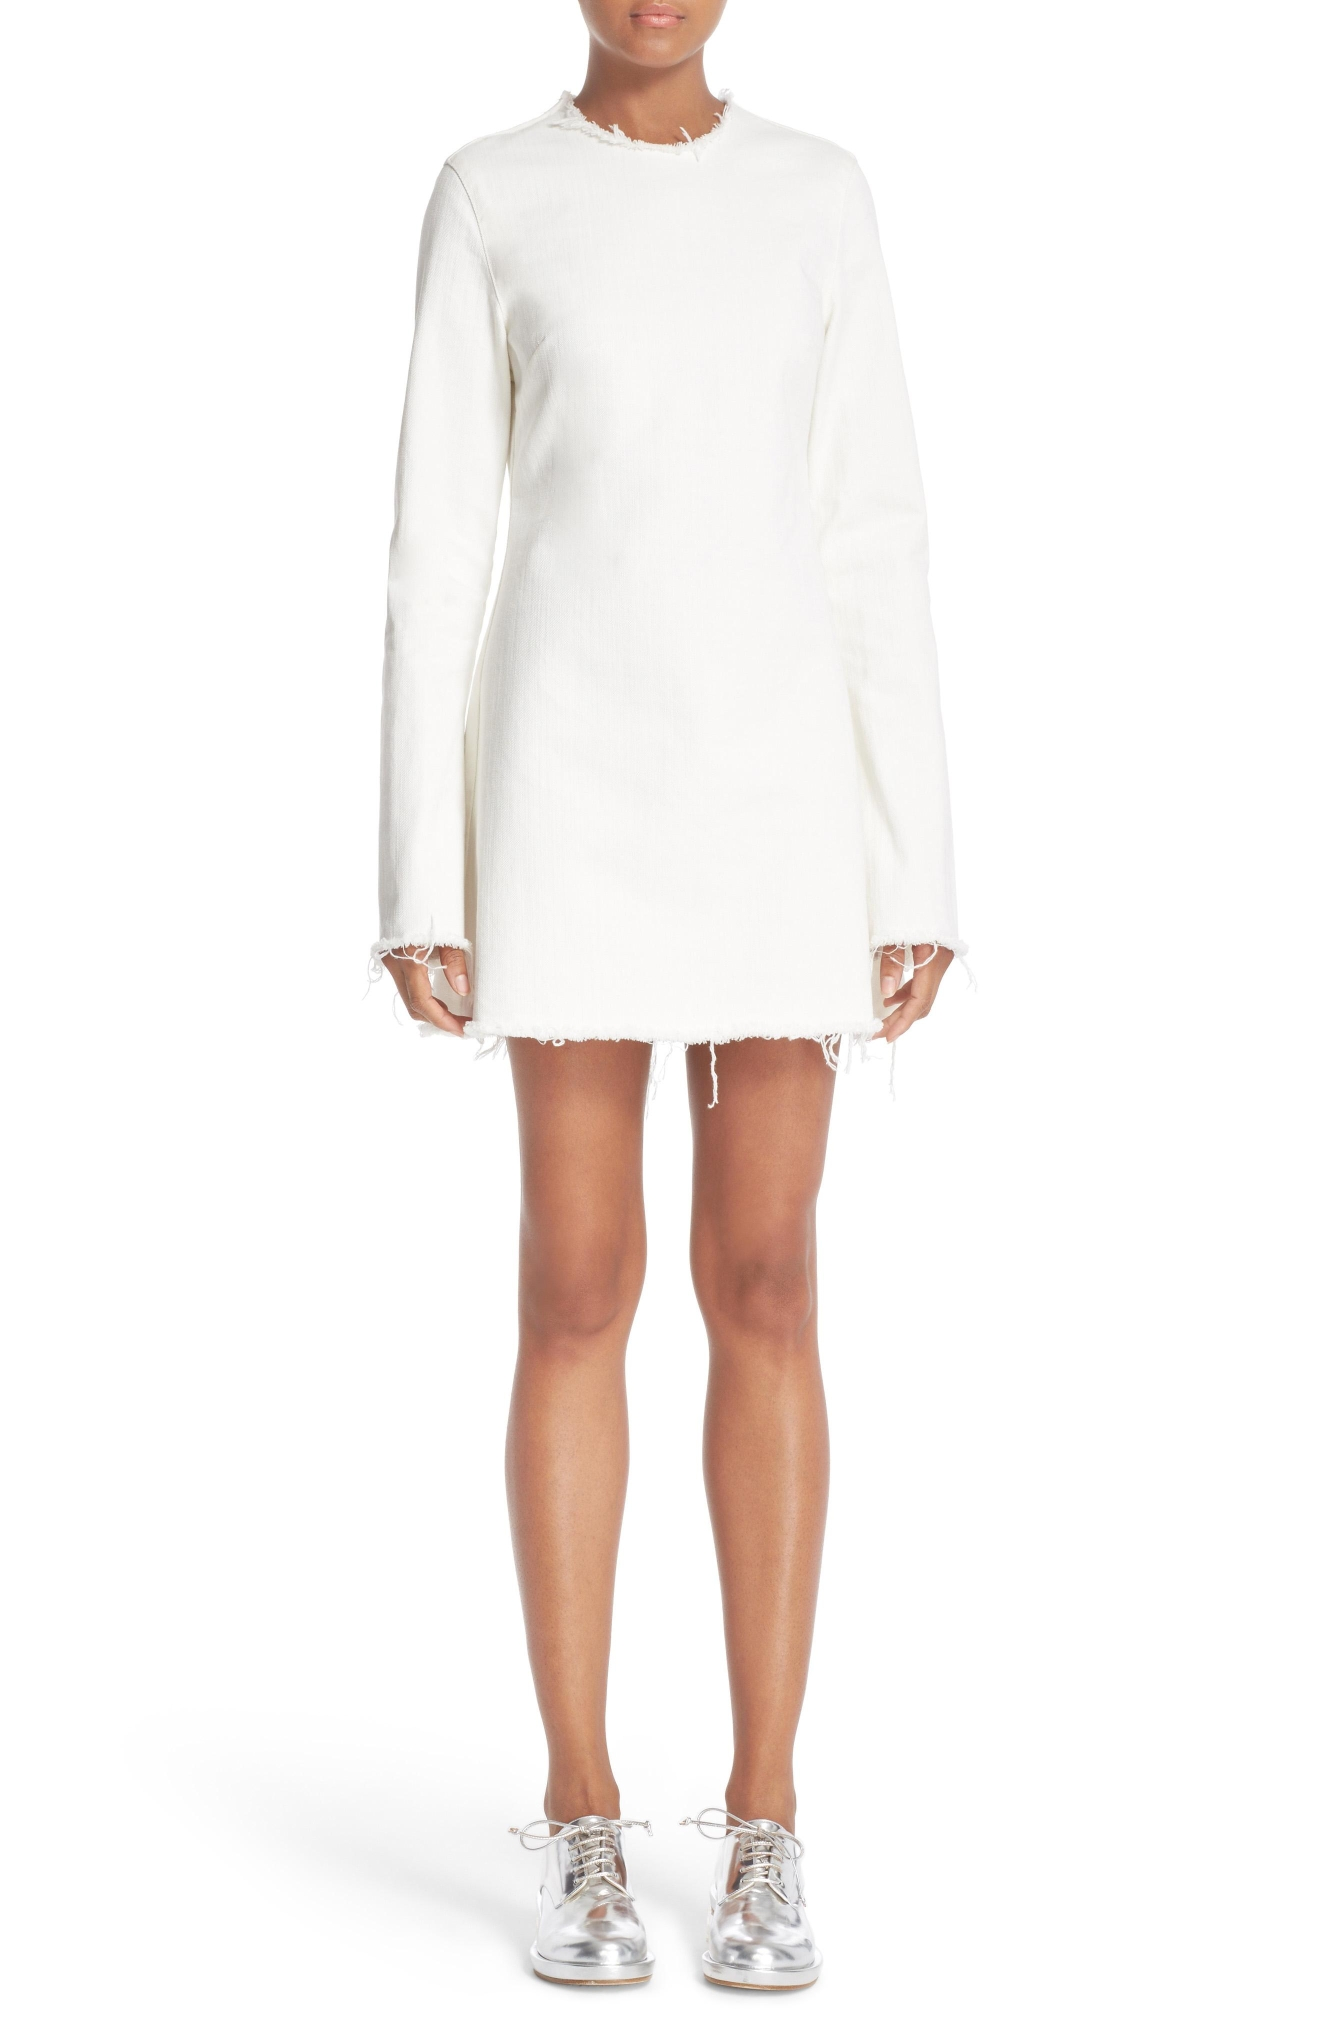 Marques'Almeida Janis Dress White Denim - $575. Get it at nordstrom.com/space. (Image: Nordstrom)